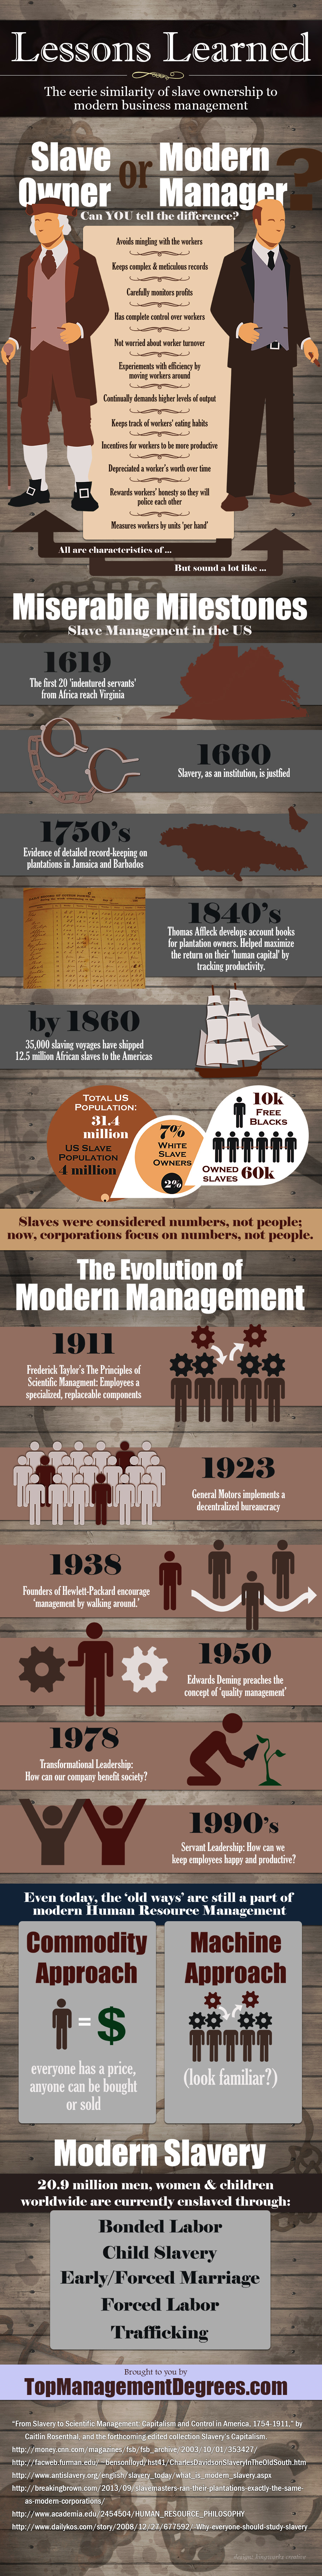 slave owners vs. modern management